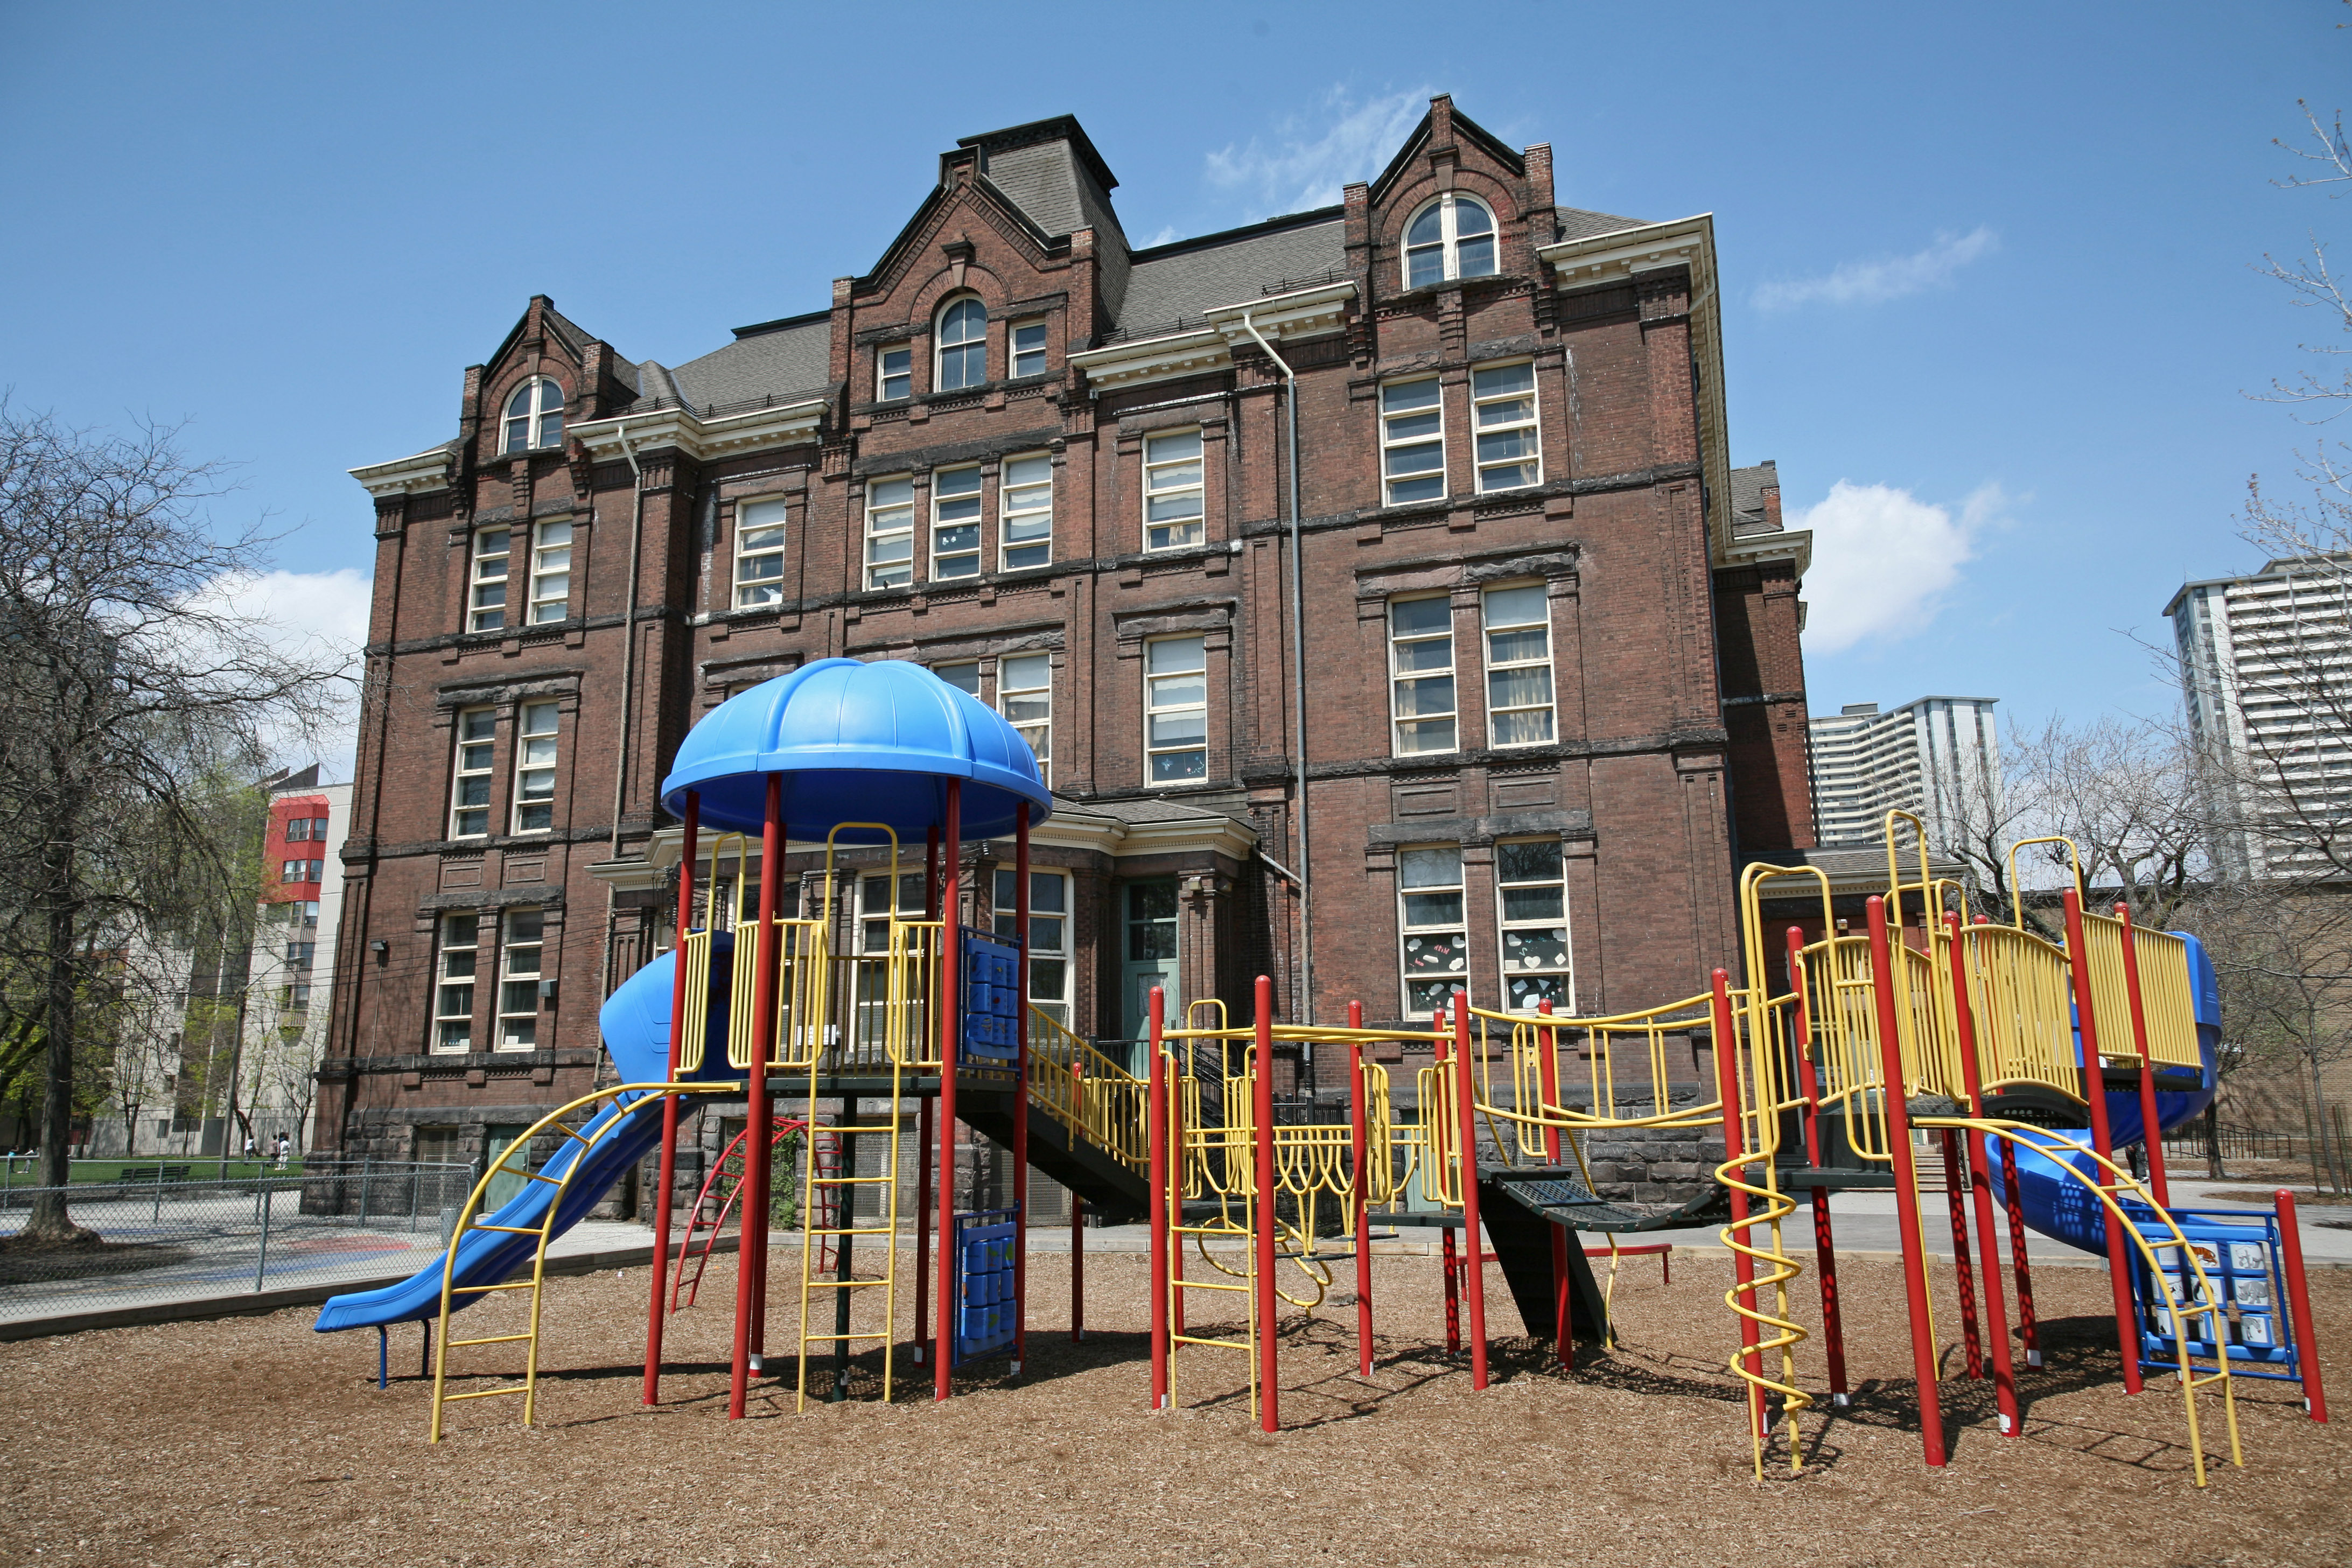 A colorful playground setup in front of an old brick school building.